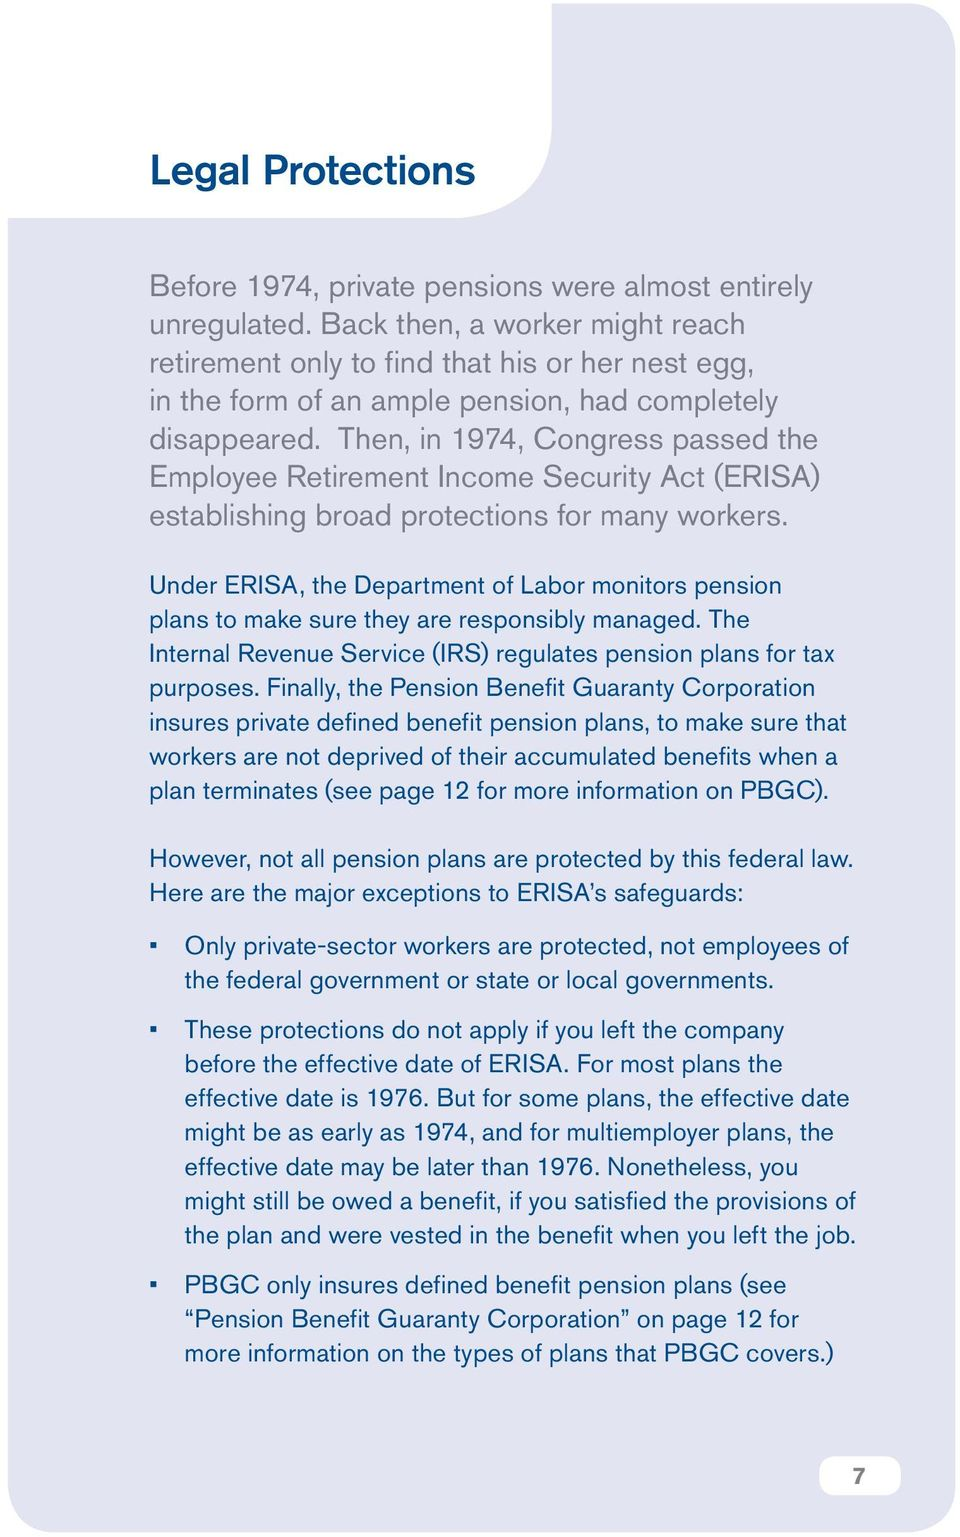 Then, in 1974, Congress passed the Employee Retirement Income Security Act (ERISA) establishing broad protections for many workers.